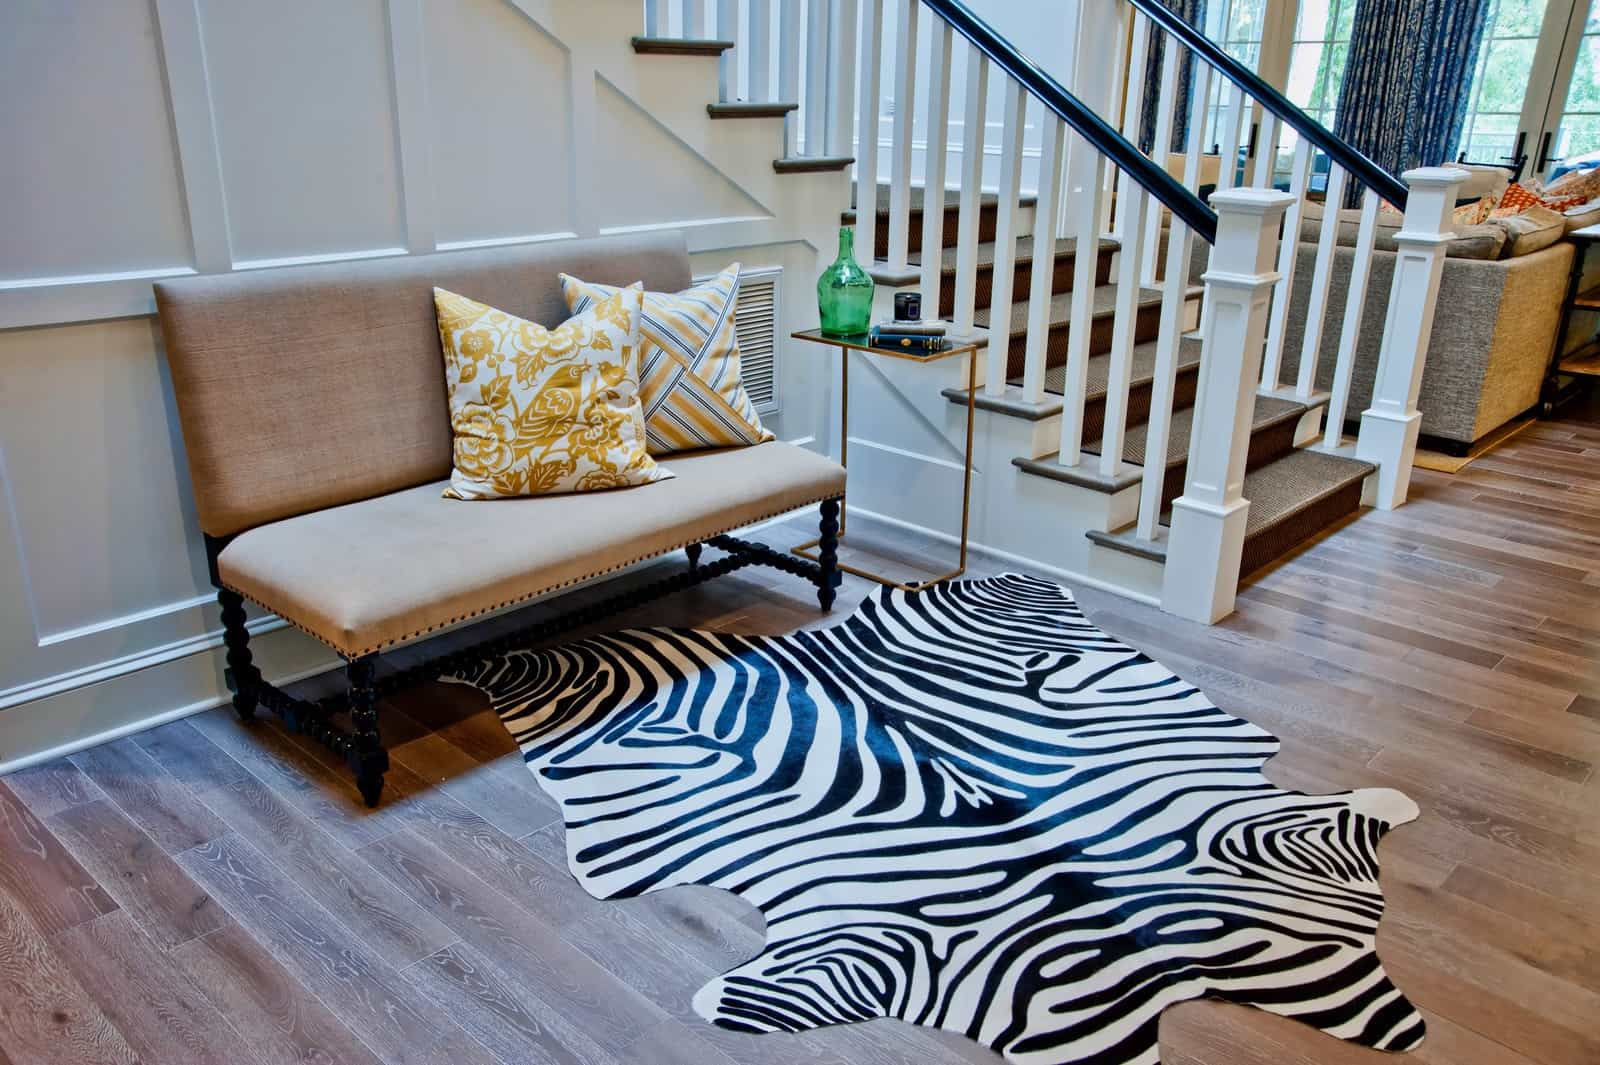 Black And White Zebra Animal Print Rug For Sitting Room Decor (View 28 of 28)